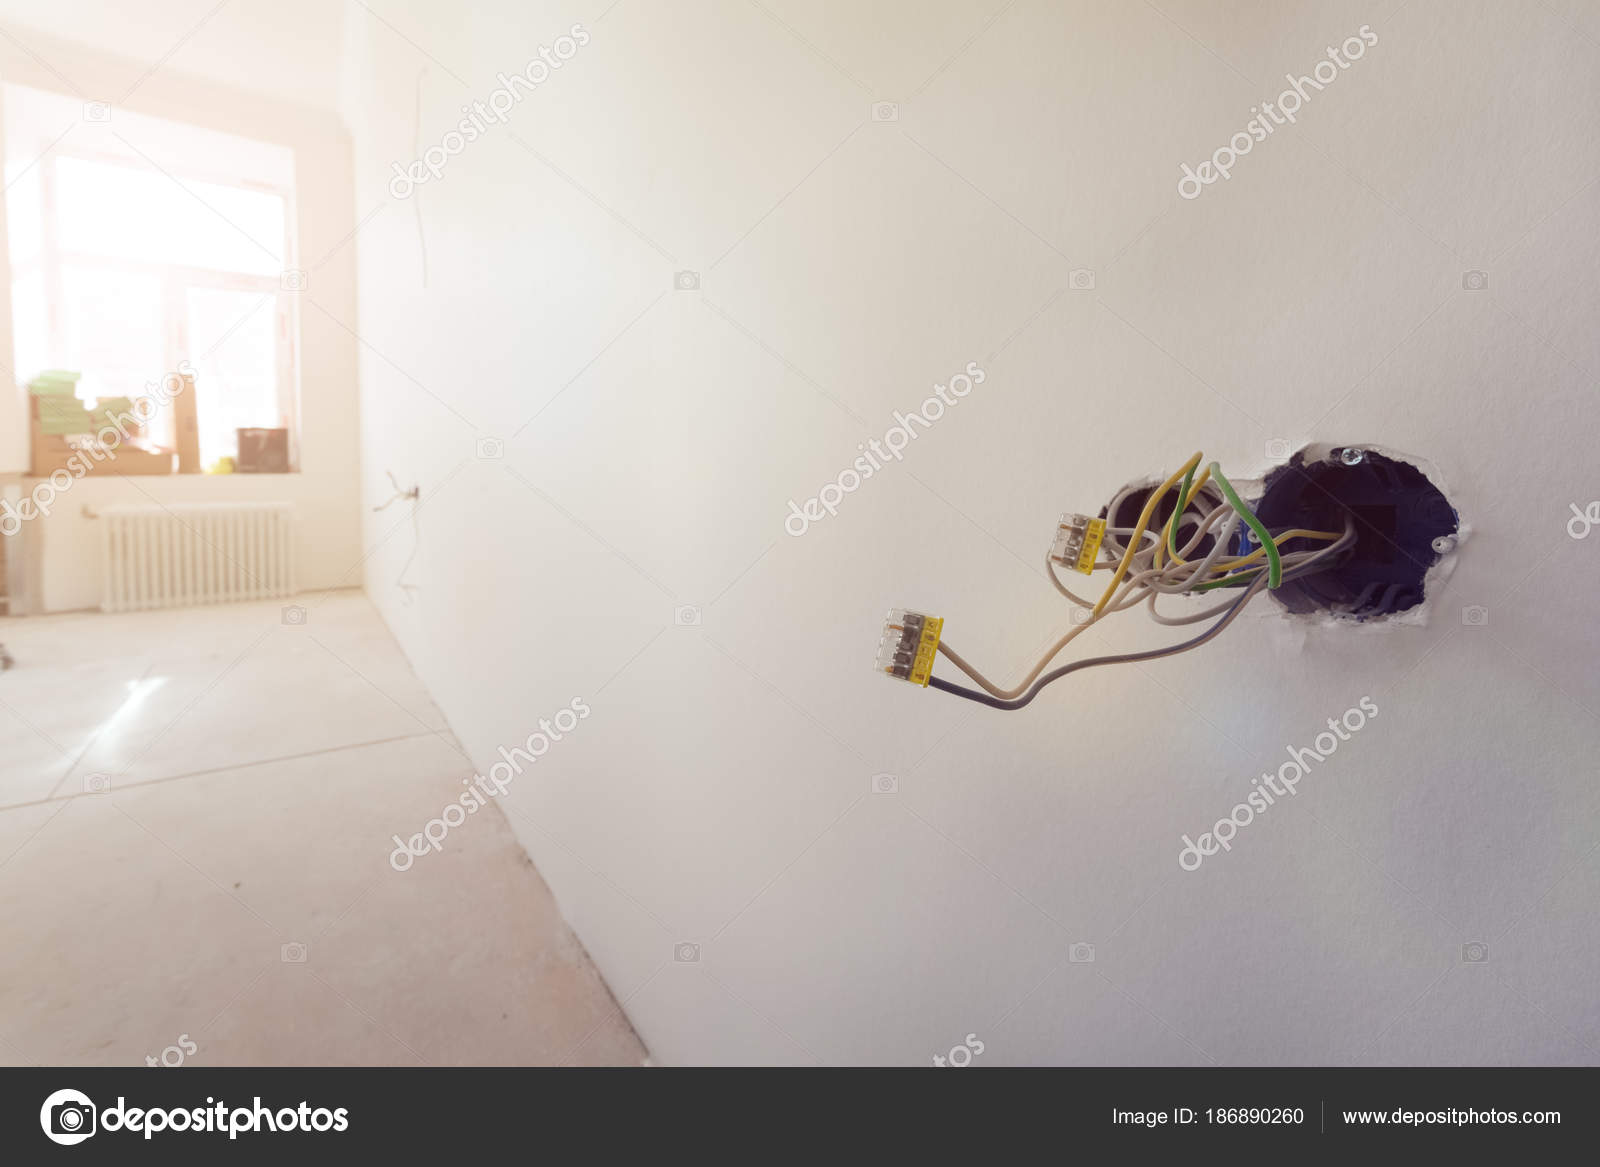 Unfinished Electrical Mains Outlet Socket With Wires And When You Go To Wire It The Ceiling Or A Wall Wiring Connector Installed In Plasterboard Drywall For Gypsum